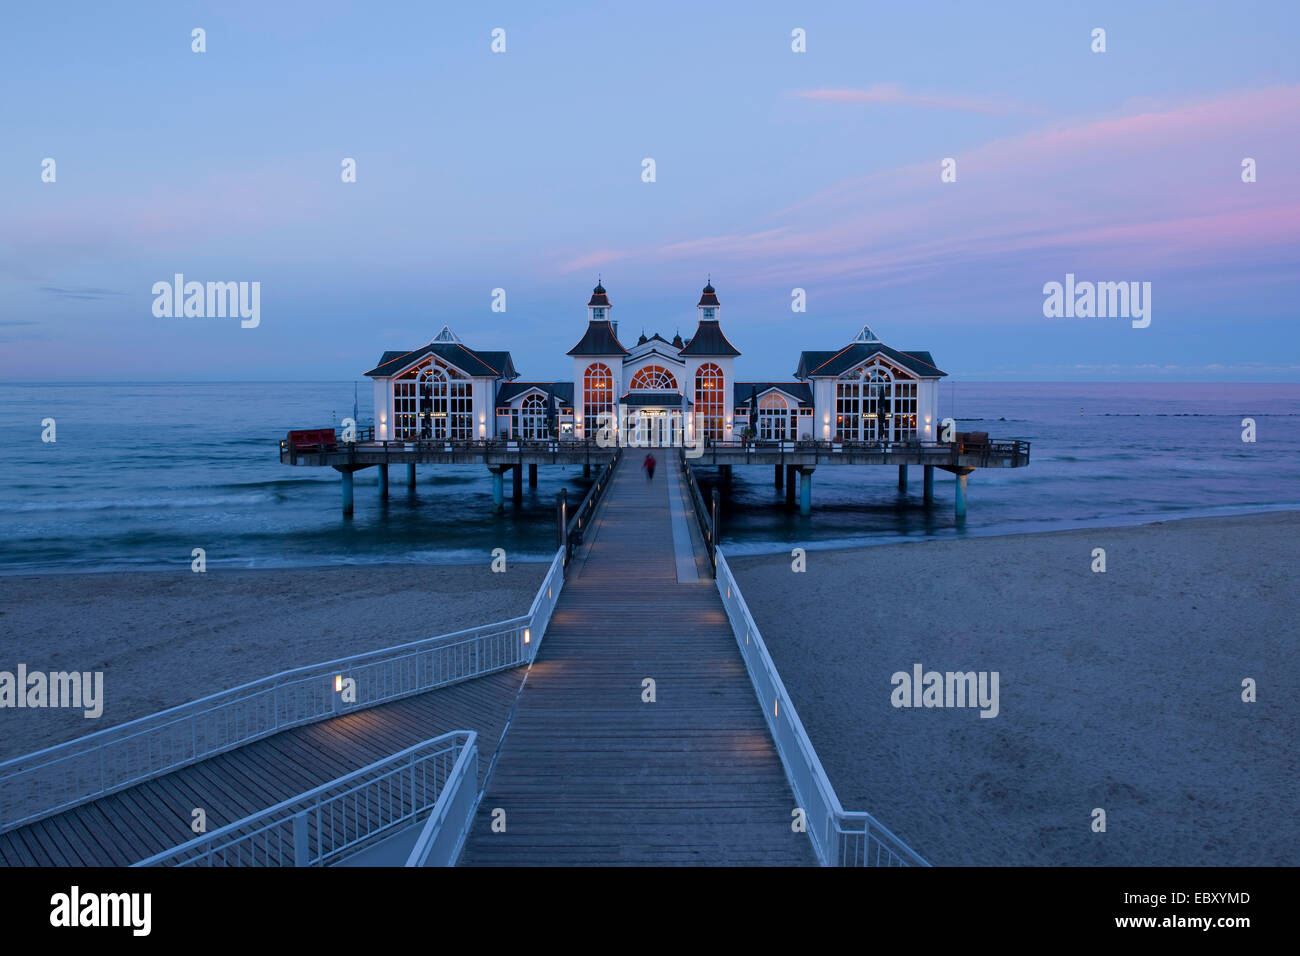 Sellin Pier at the blue hour, Baltic Seaside Resort Sellin, Rügen, Mecklenburg-Western Pomerania, Germany - Stock Image